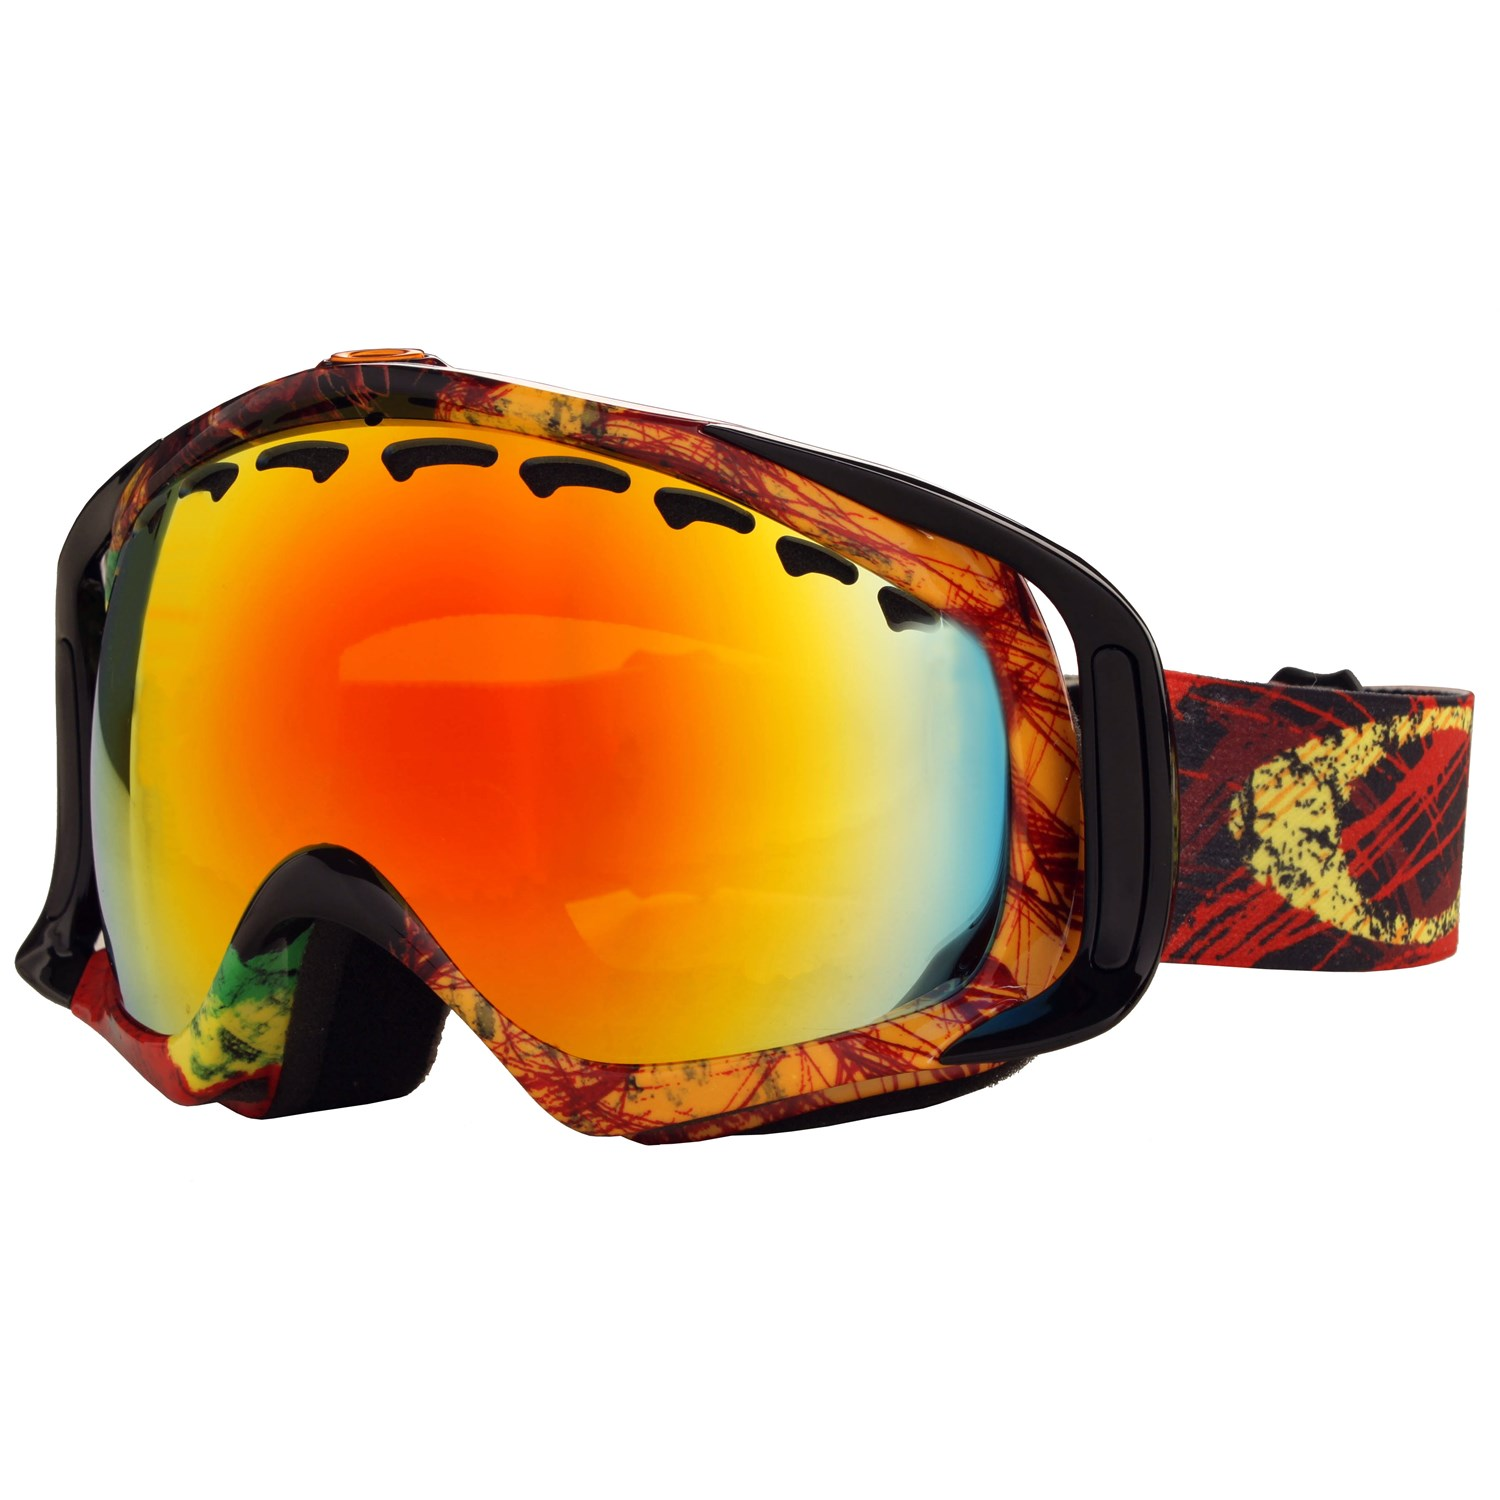 oakley ski goggles crowbar  Oakley Tanner Hall Signature Series Alternative Fit Crowbar ...